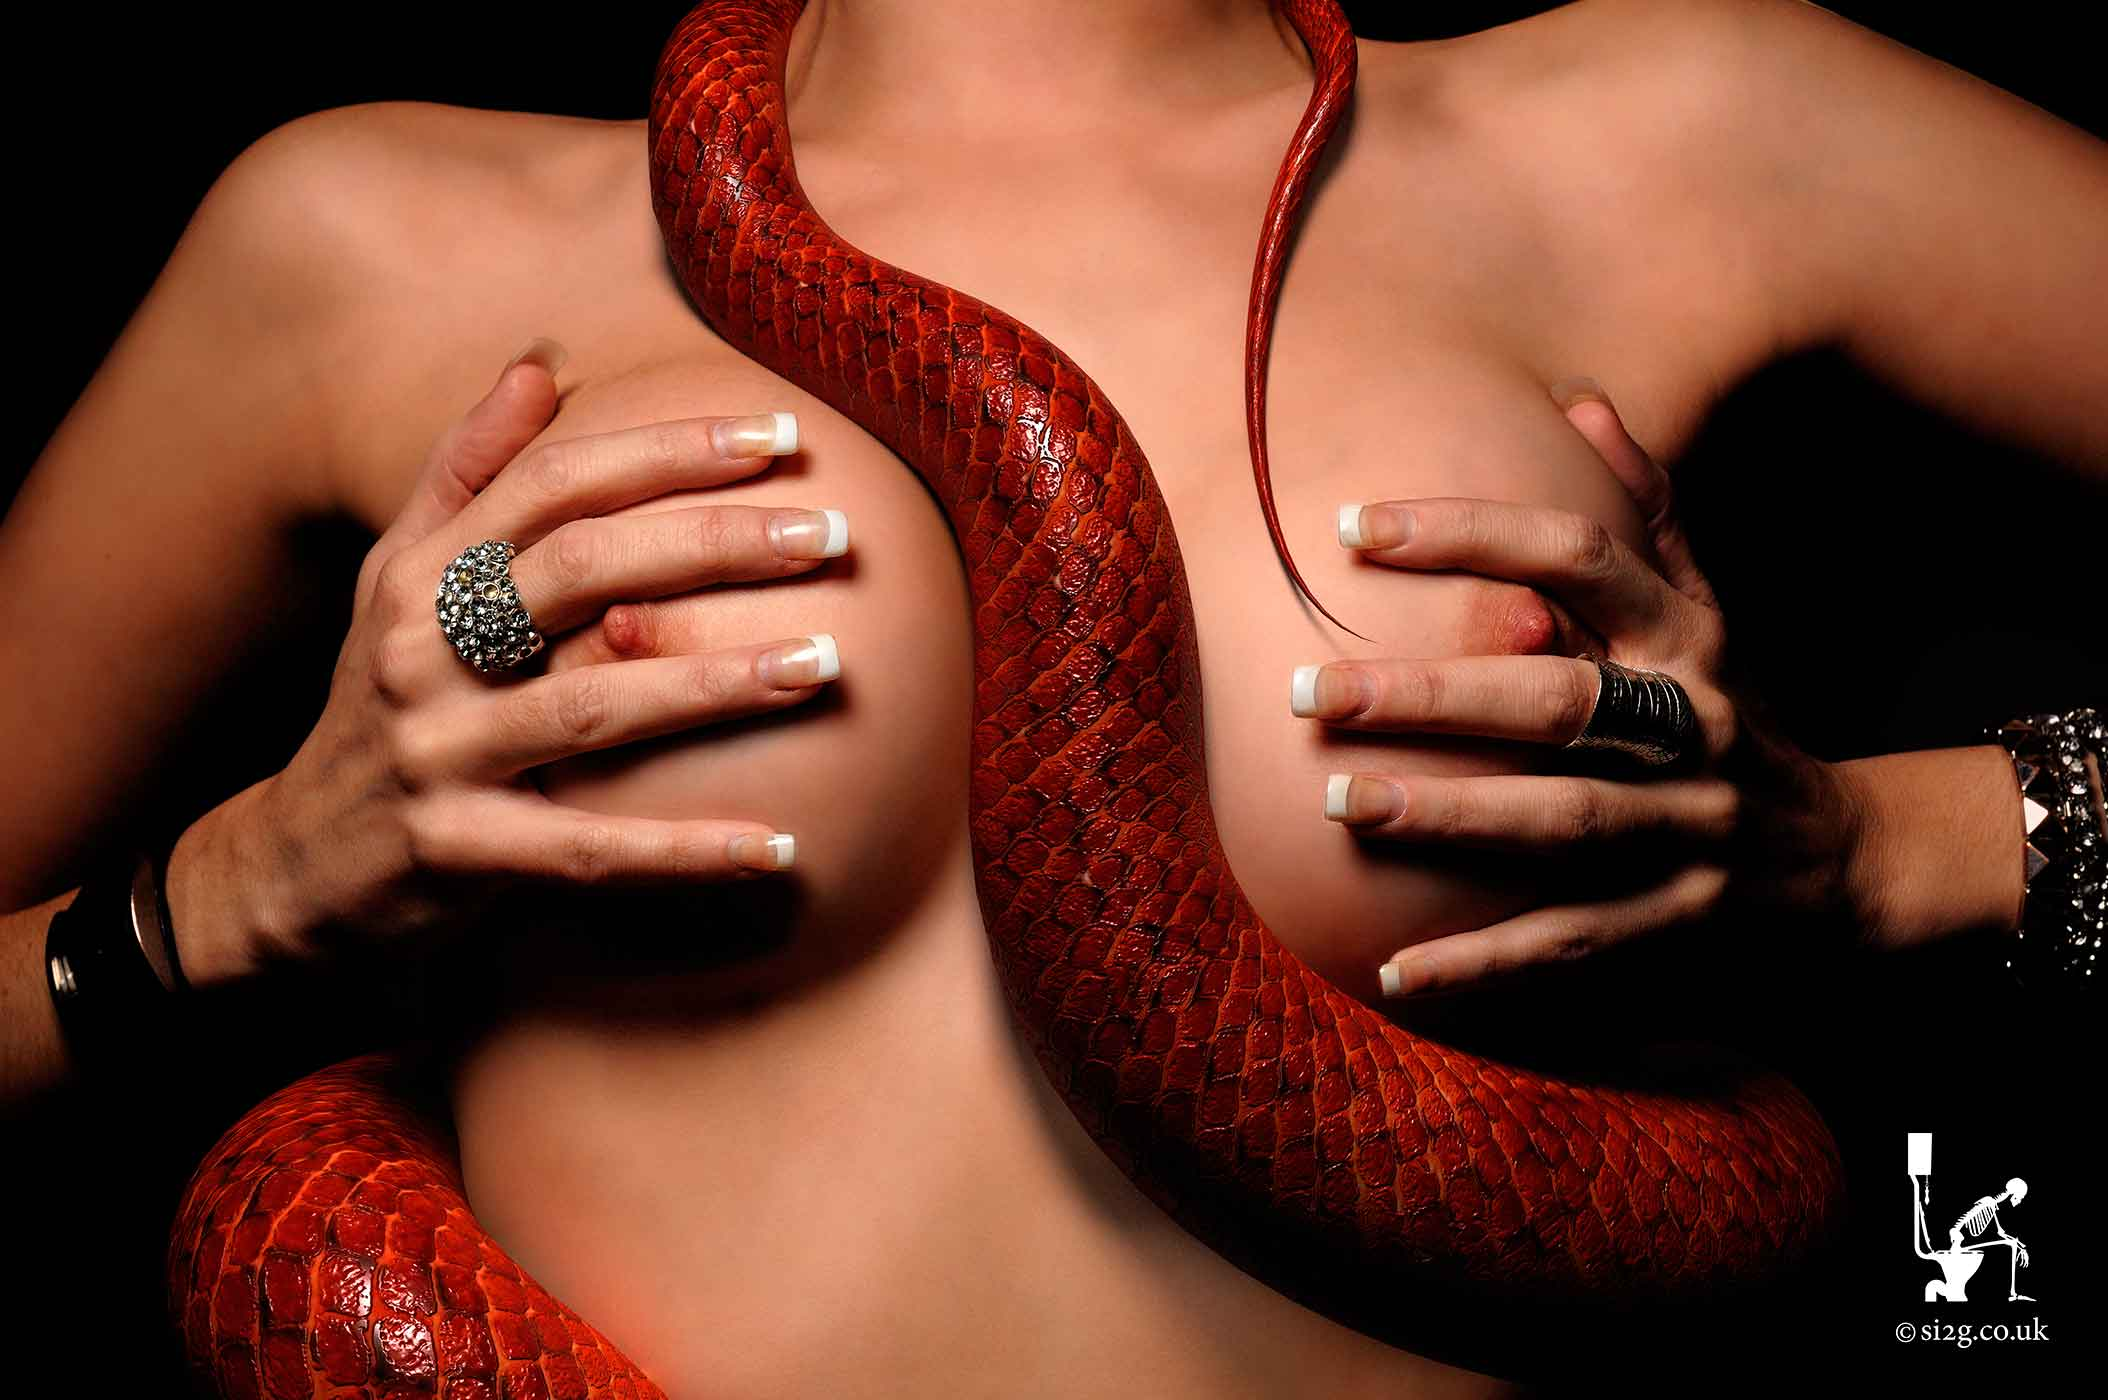 Tail Between Boobs - This iconic design of a reptilian tail in the cleavage of a topless unknown was commissioned for sleazy London Rock band King Lizard.  I was asked to turn up on a Saturday morning to photograph a topless model with a real lizard crawling across her chest.  I was also told the model and lizard had been arranged.  I expected to turn up at the studio to see a line of guys with lizards queuing half way round the block and no chance of a girl arriving and willing to expose herself.  But, to my surprise, a willing model arrived but the lizard owner wanted an extortionate fee for turning up.  I opted to photograph the model, design a CGI snake and composite the two together.  Viva La Decadence.